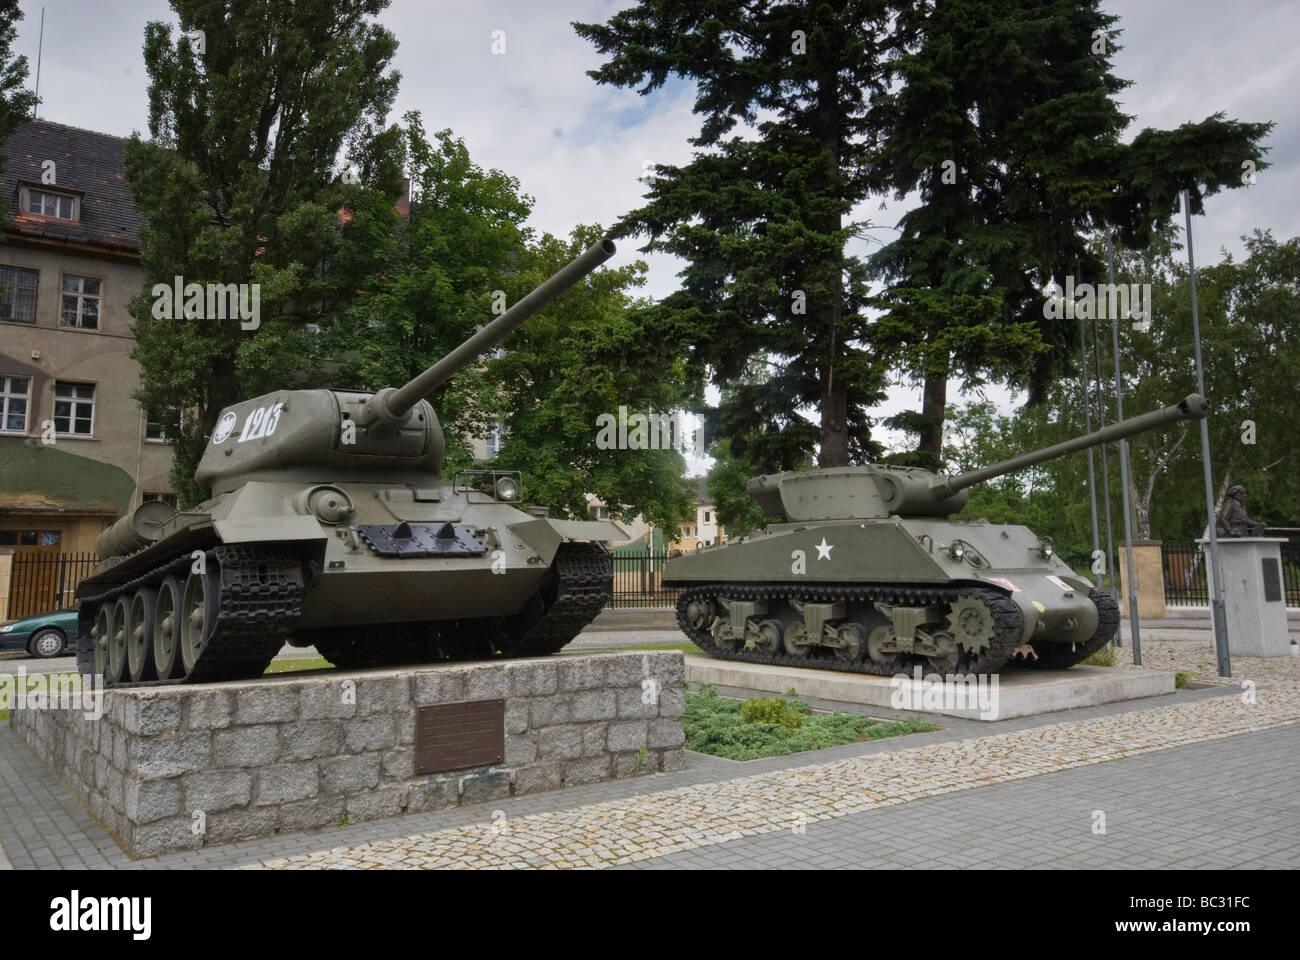 T34 Stock Photos & T34 Stock Images - Alamy